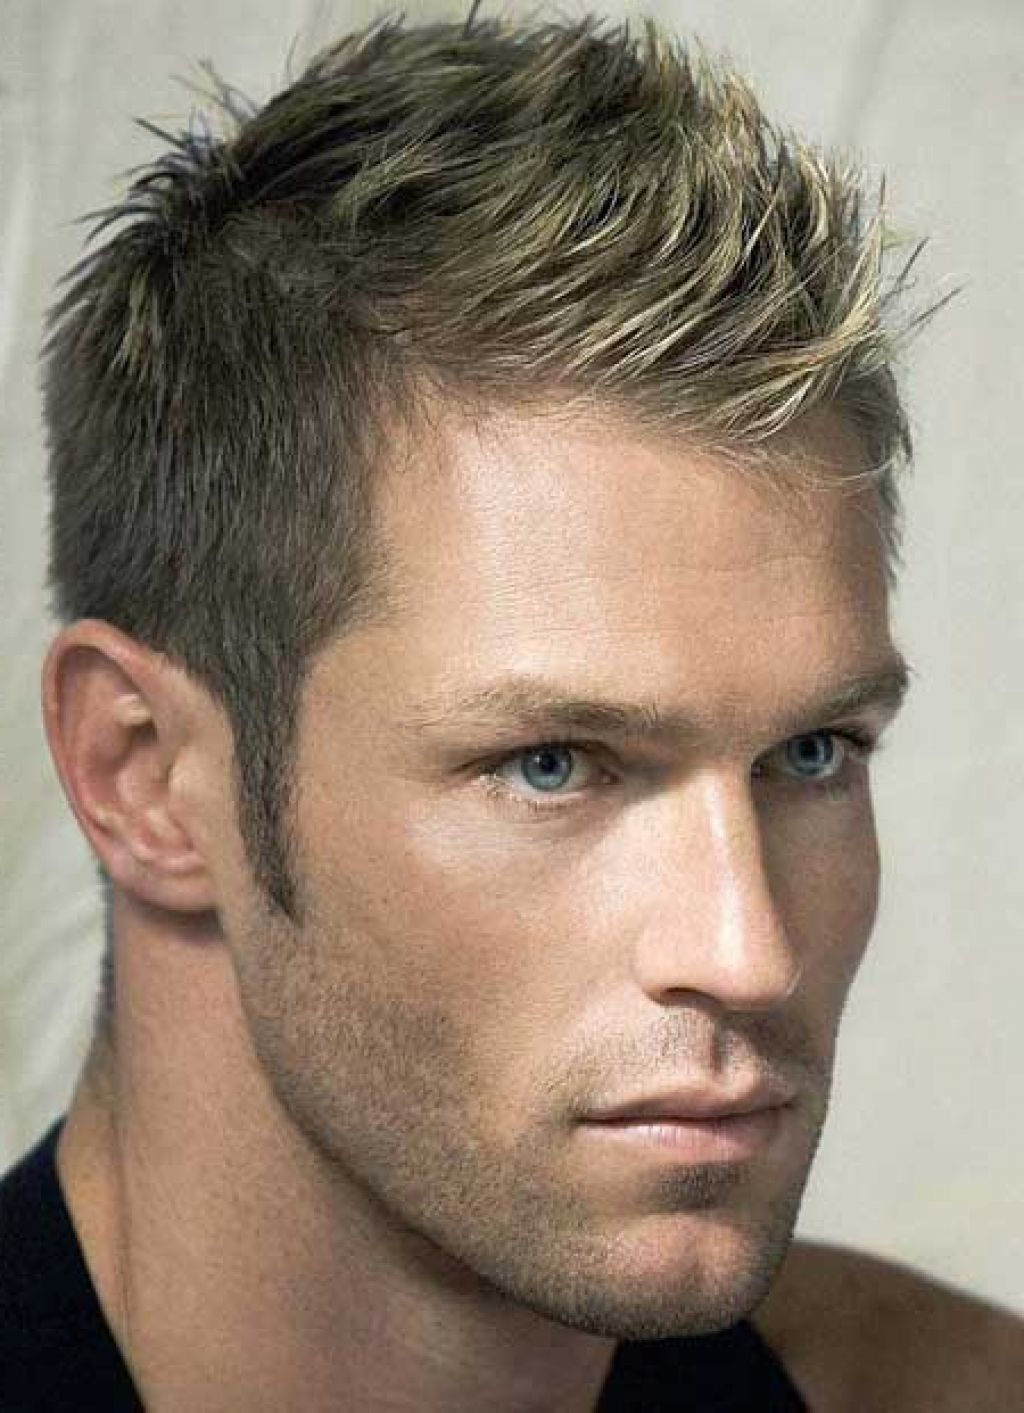 Hairstyles For Men To The Side Hairstyles Mens Haircuts Short Sides Long On Top Men Hairstyle